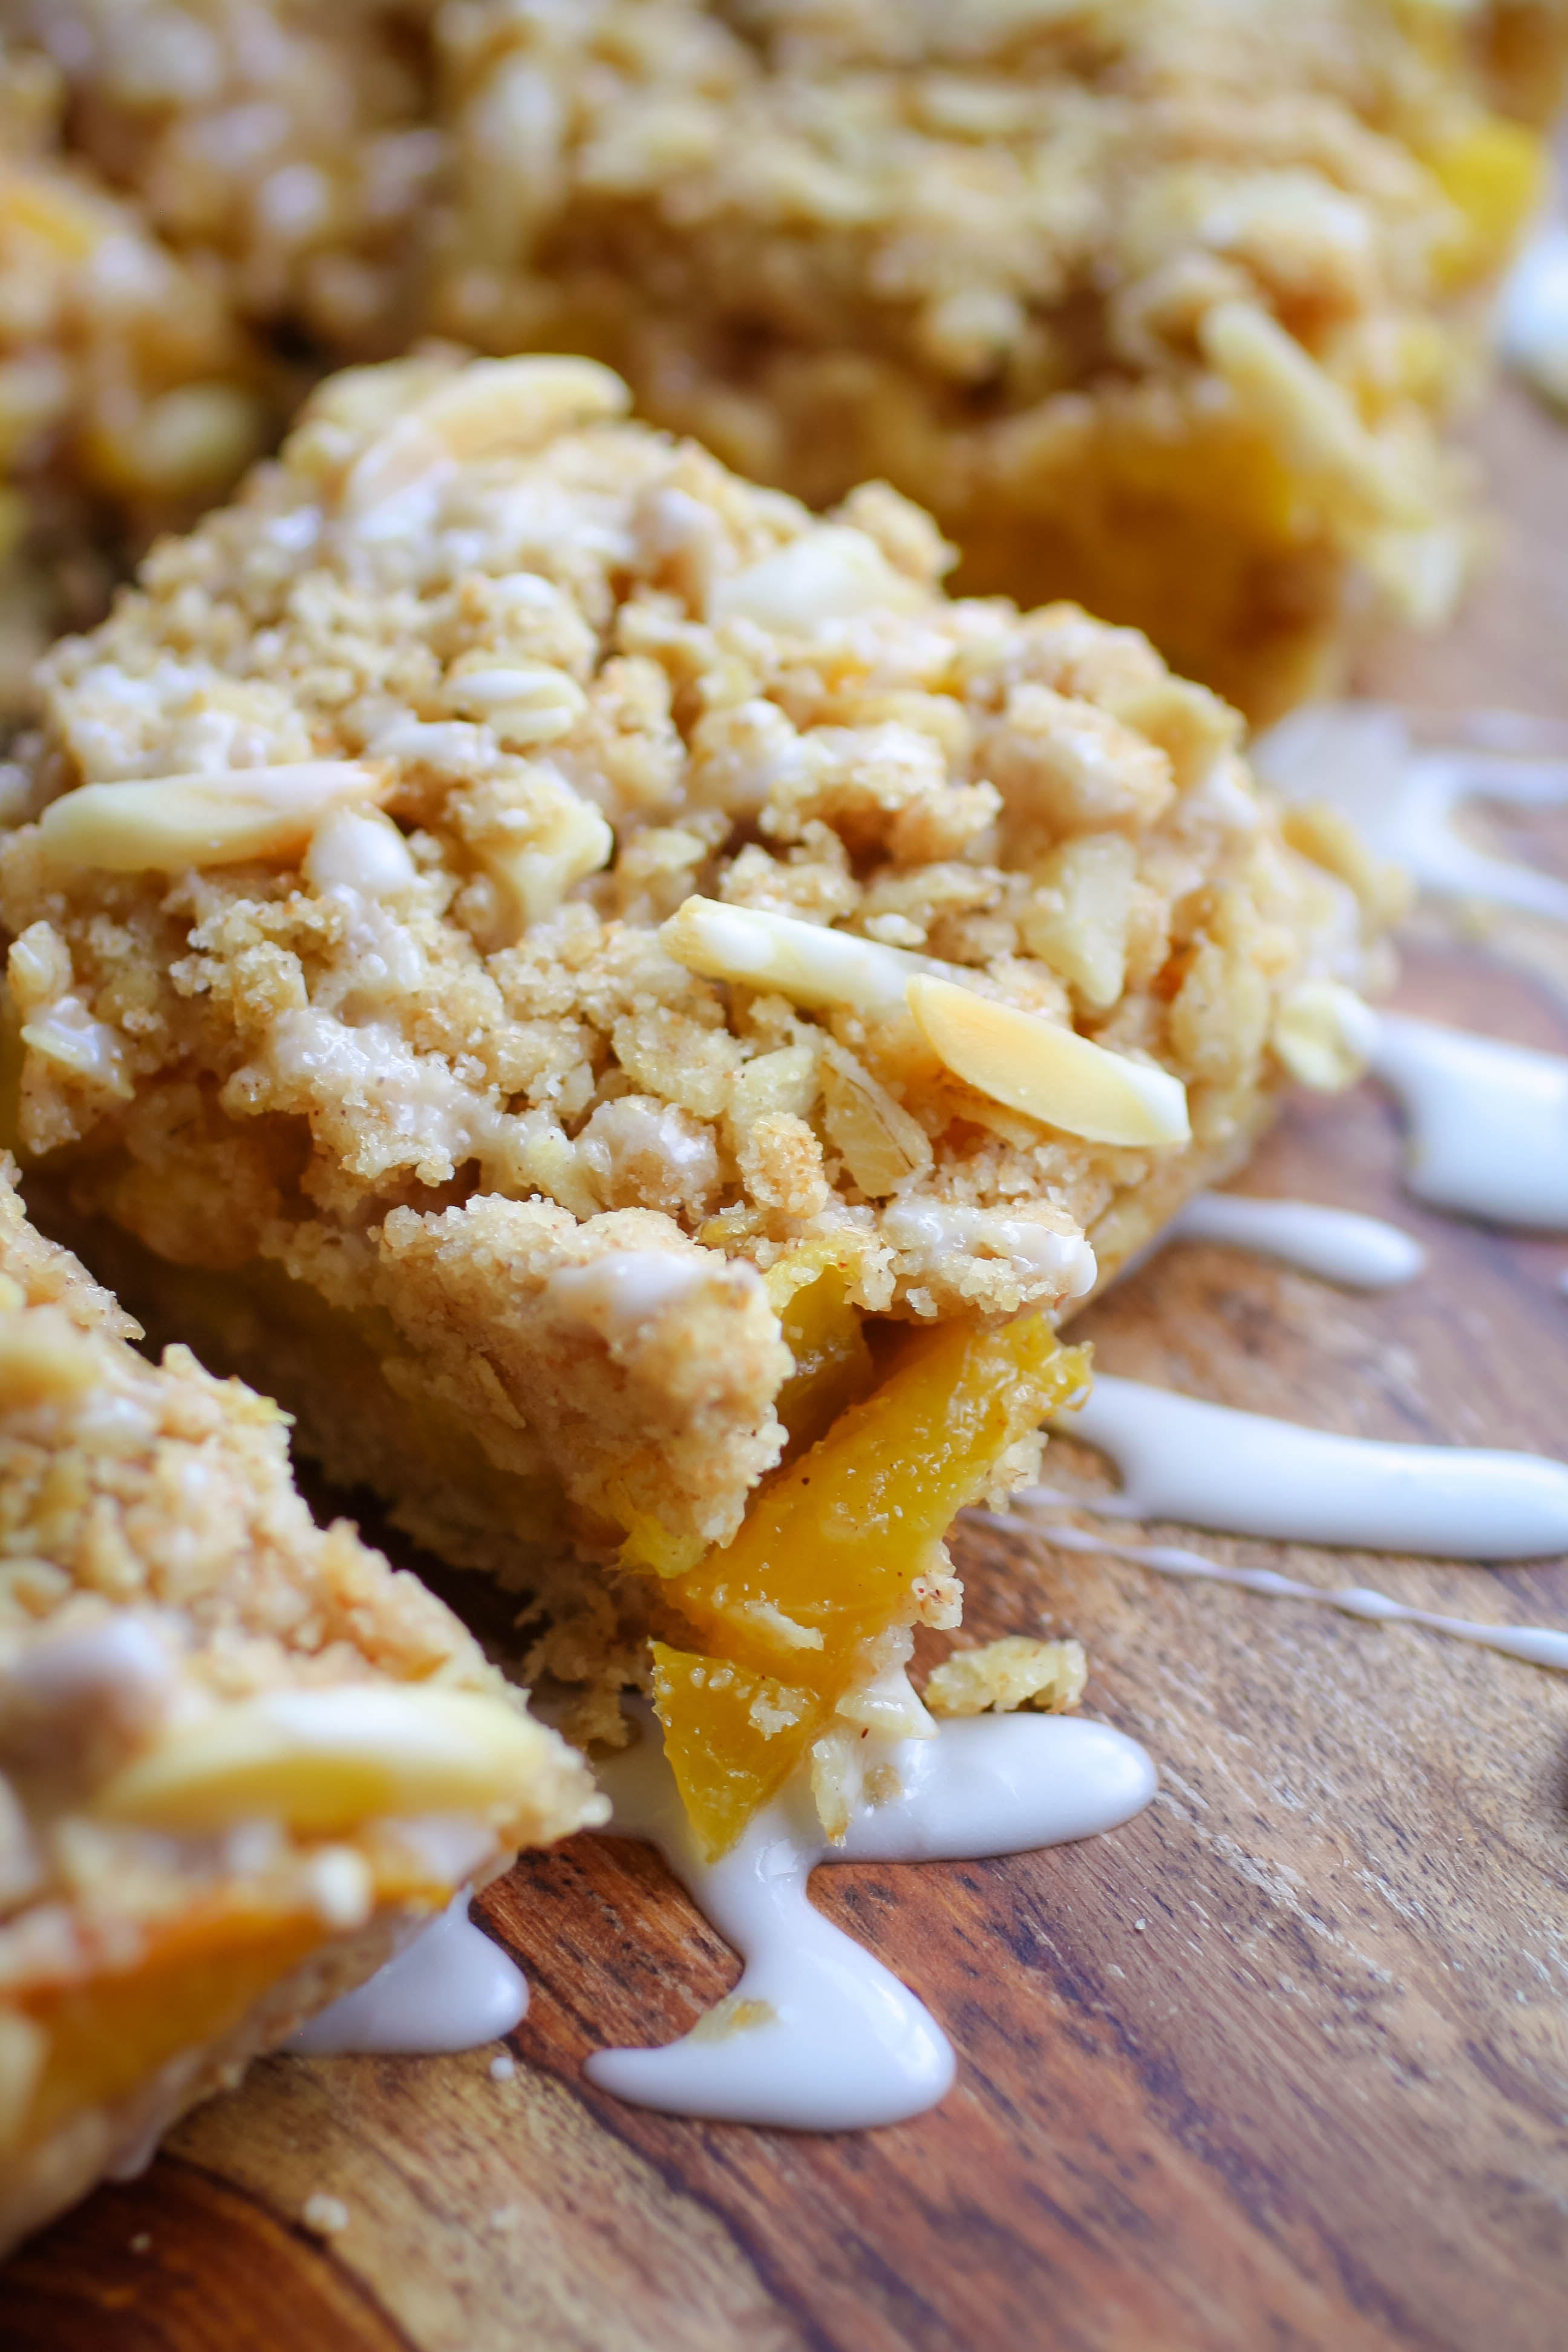 Peach Crumble Squares with Bourbon Glaze for the sweet-treat win! You'll enjoy these Peach Crumble Squares with Bourbon Glaze this season!